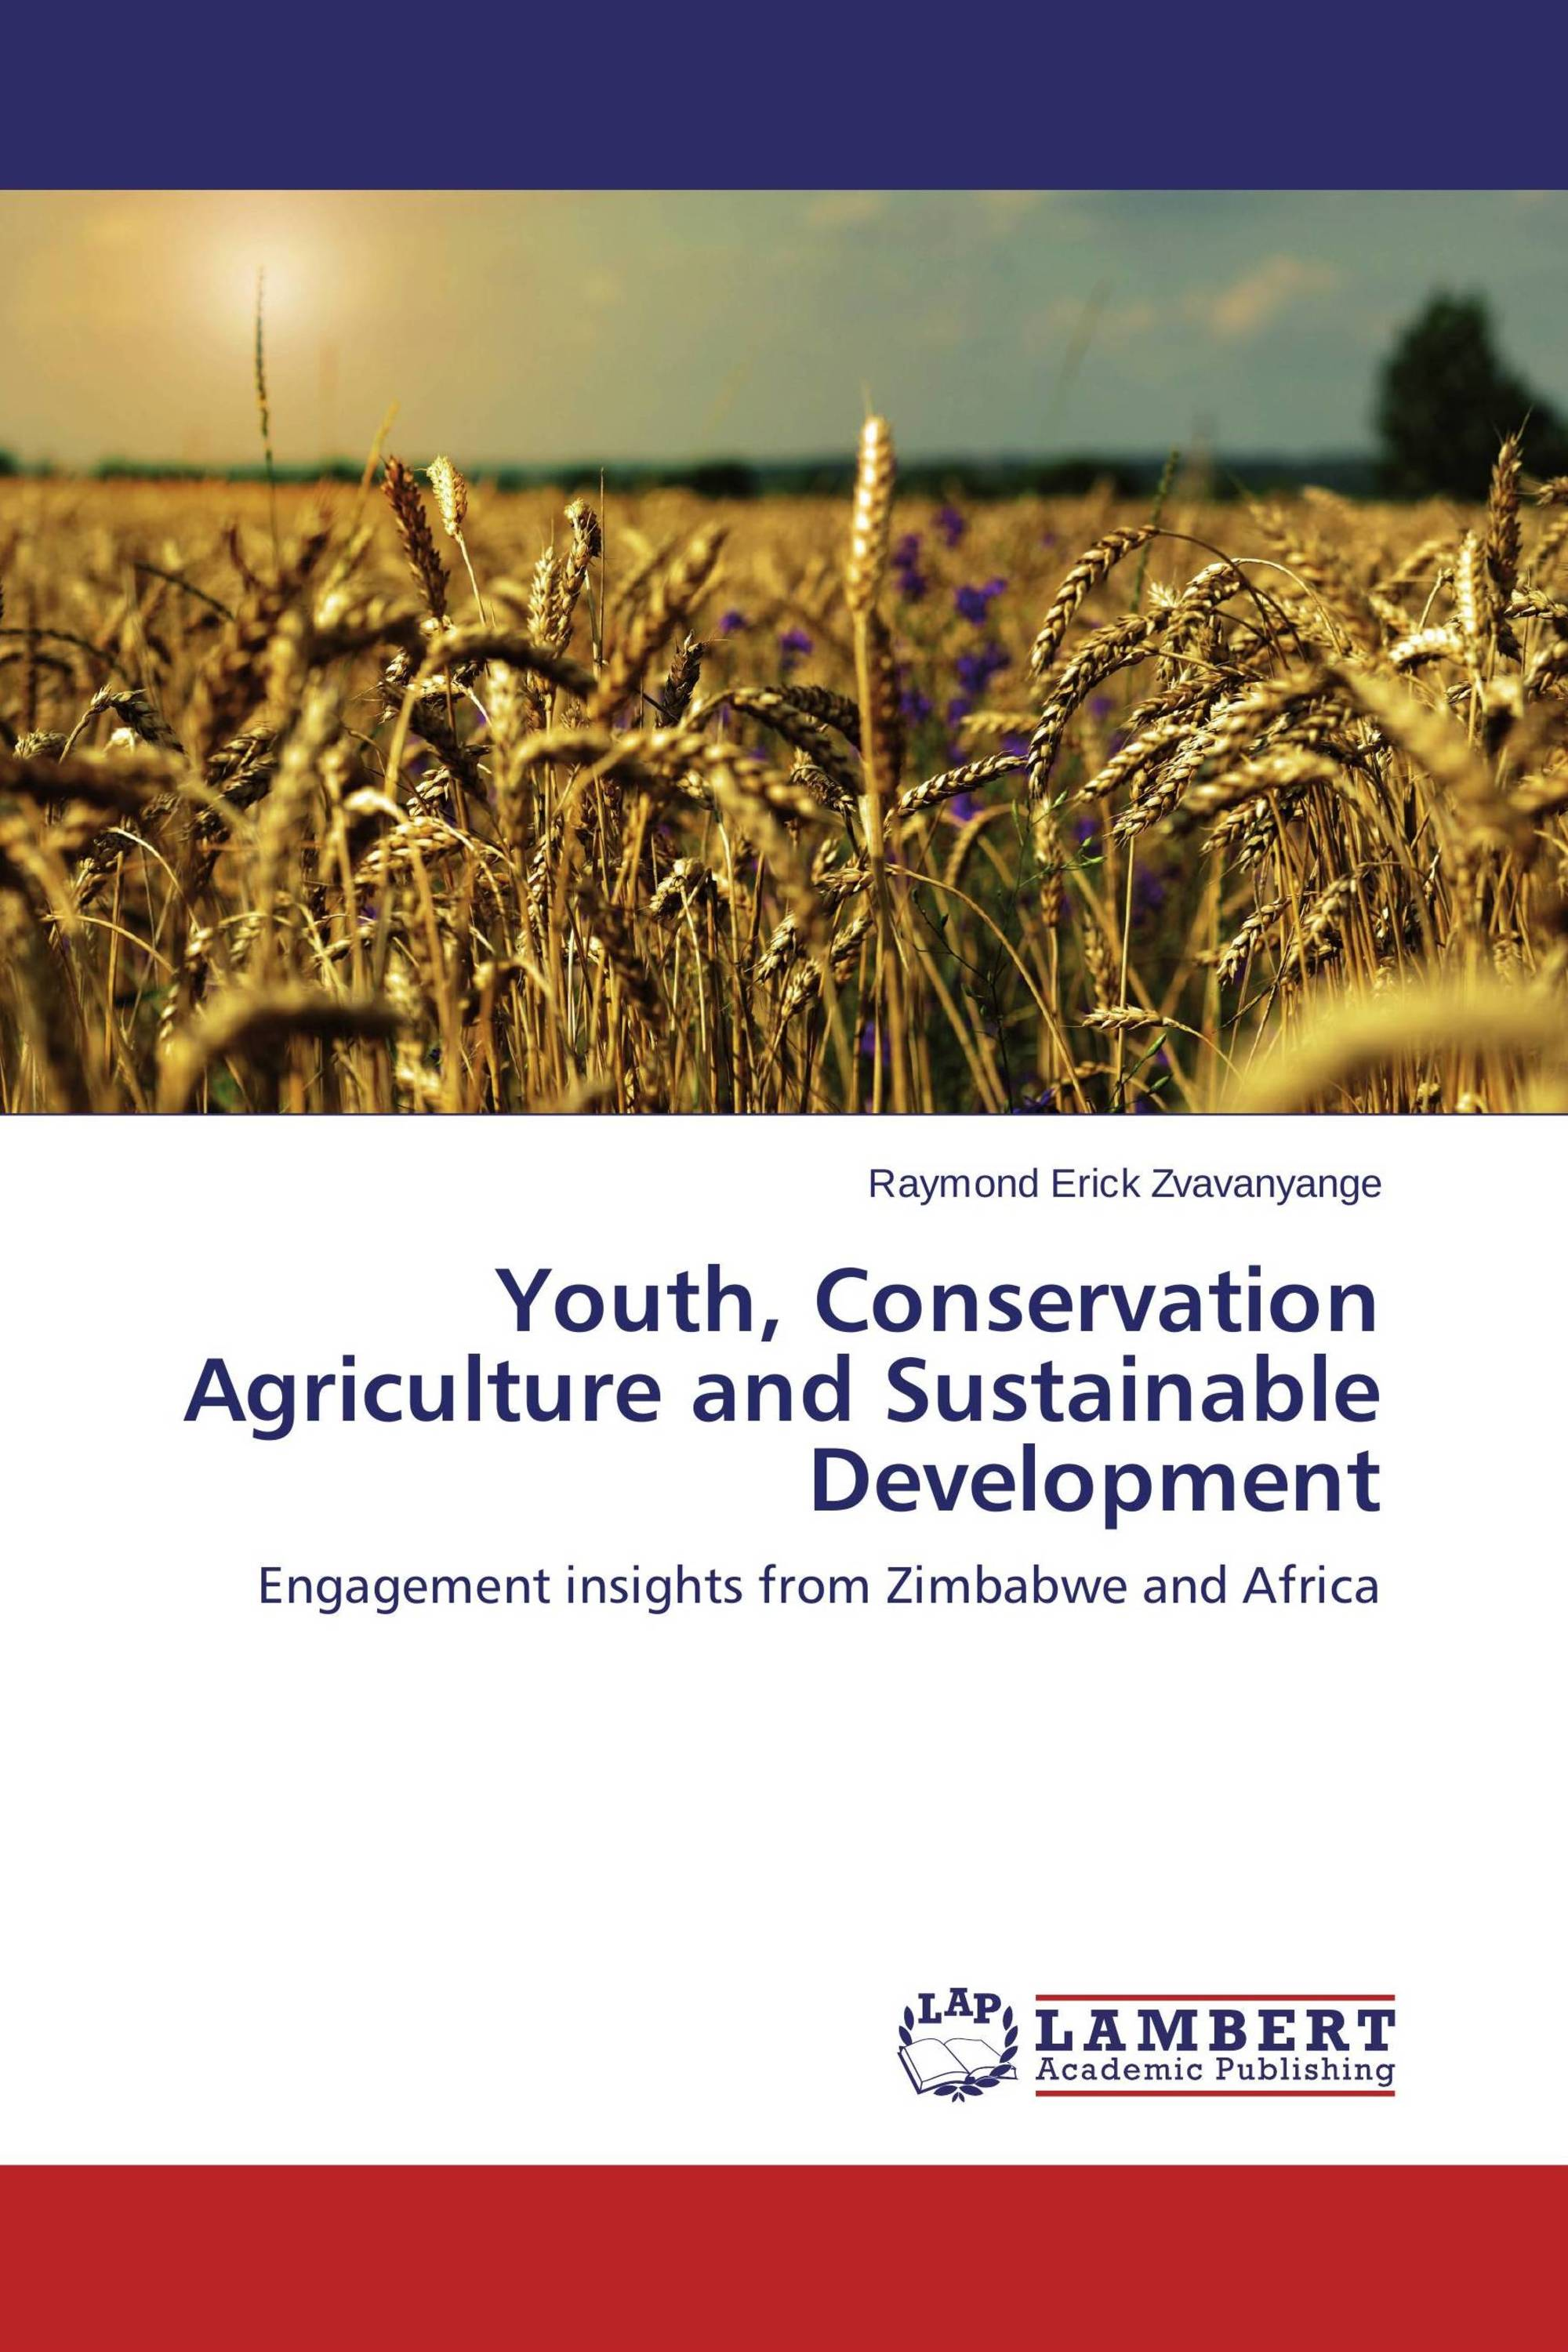 Youth, Conservation Agriculture and Sustainable Development